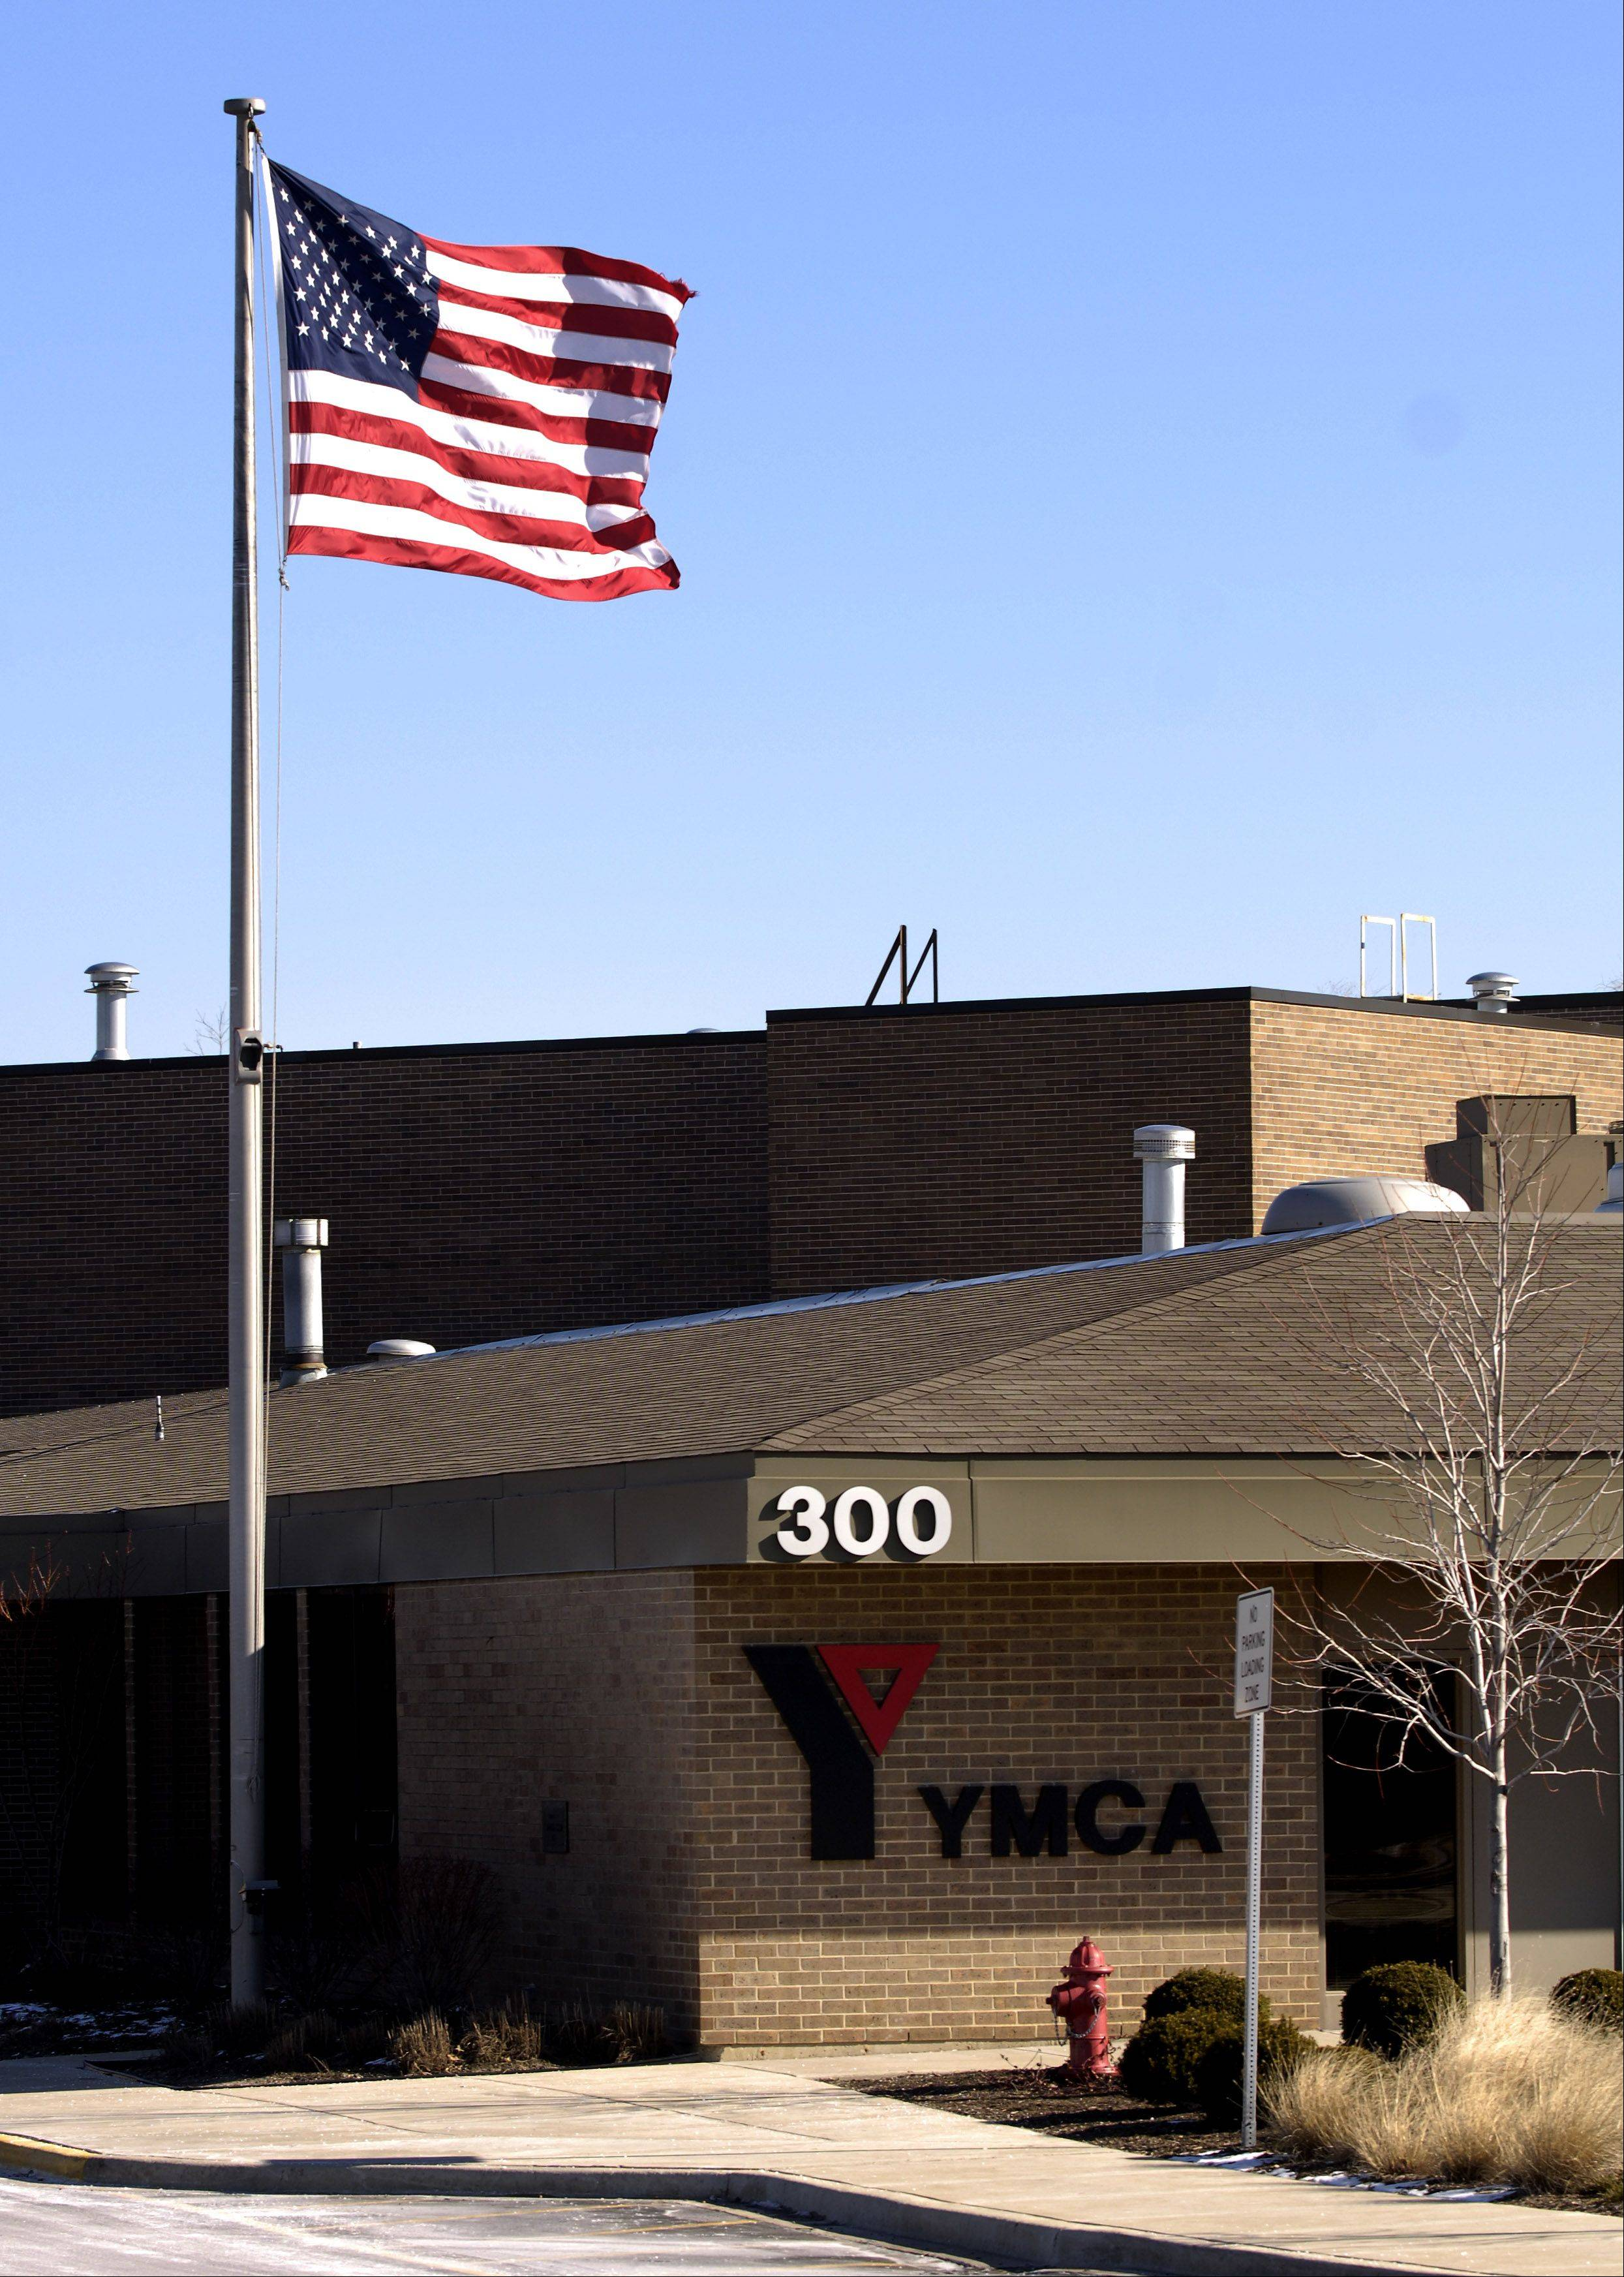 The Alfred Campanelli YMCA in Schaumburg is taking over management of the four branches of the Elgin-based Prairie Valley Family YMCA, according to a letter its director sent to supporters this month. It's part of a nationwide effort to consolidate smaller Ys.